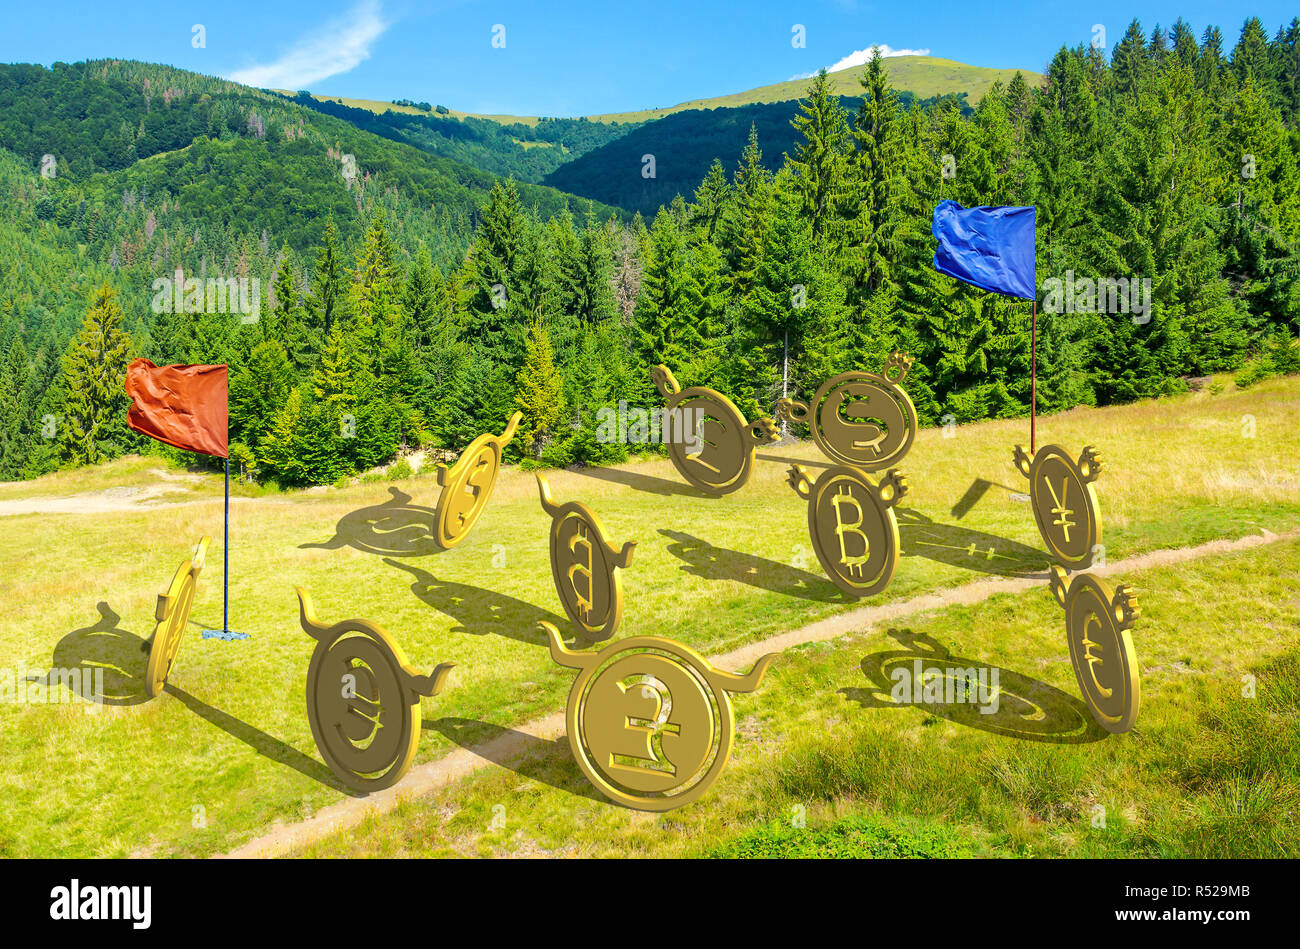 currency wars. bulls vs bears, bitcoin leading the team. battle on the hill near the forest. capture the flag concept. lovely summer landscape with mo - Stock Image